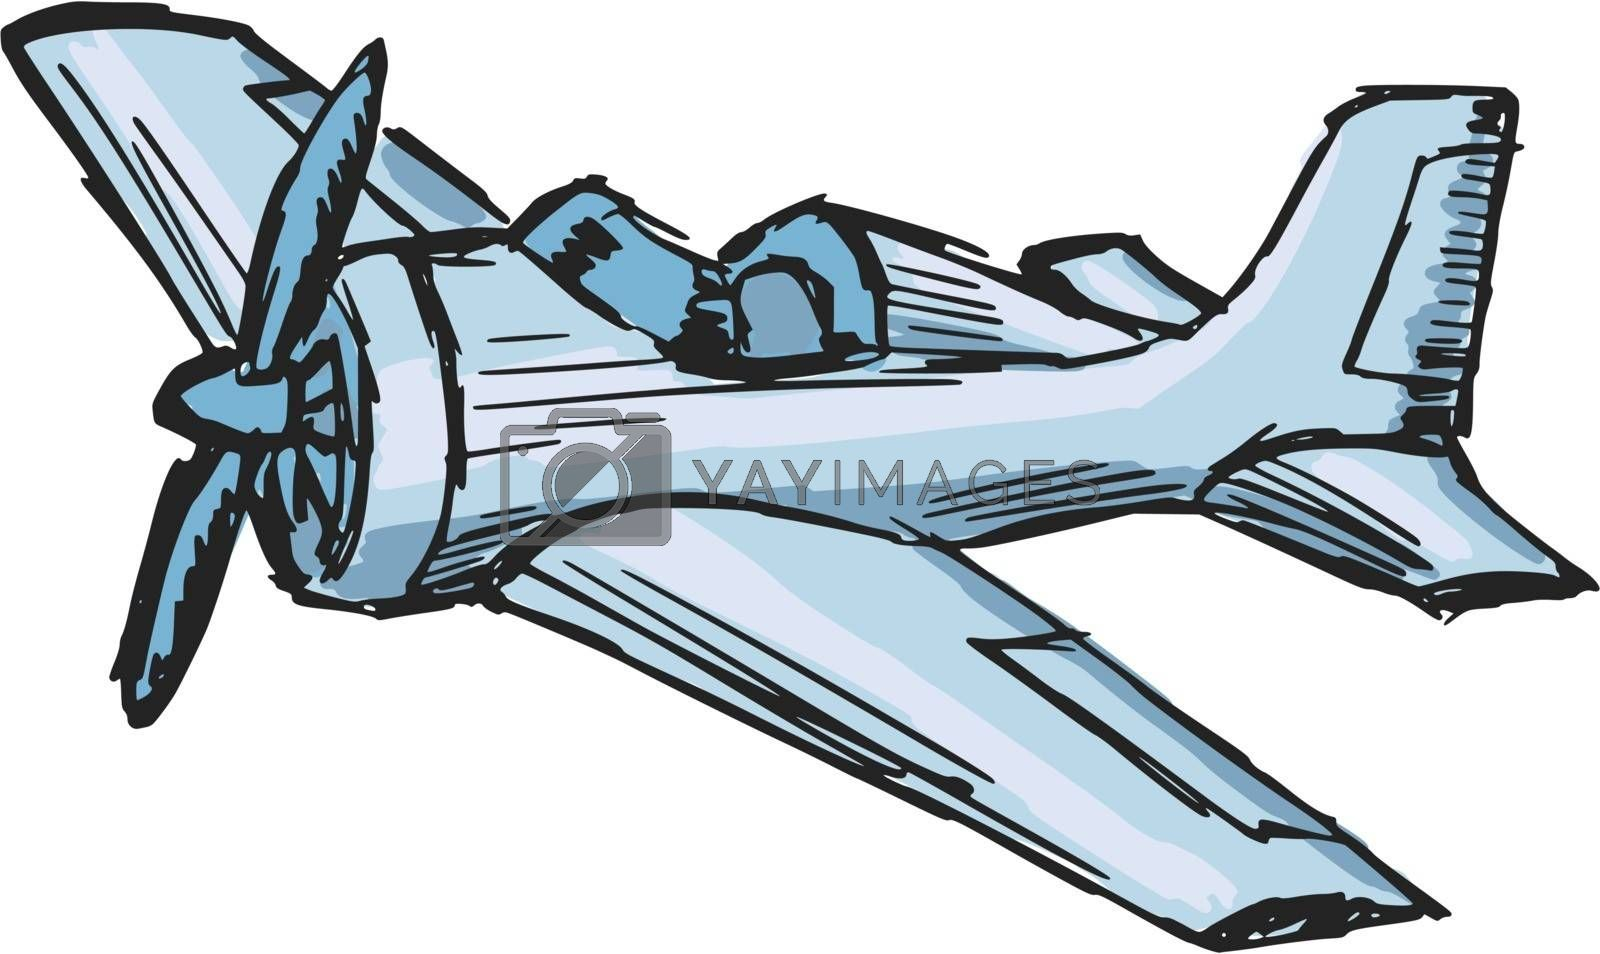 Royalty free image of cartoon airplane by Perysty